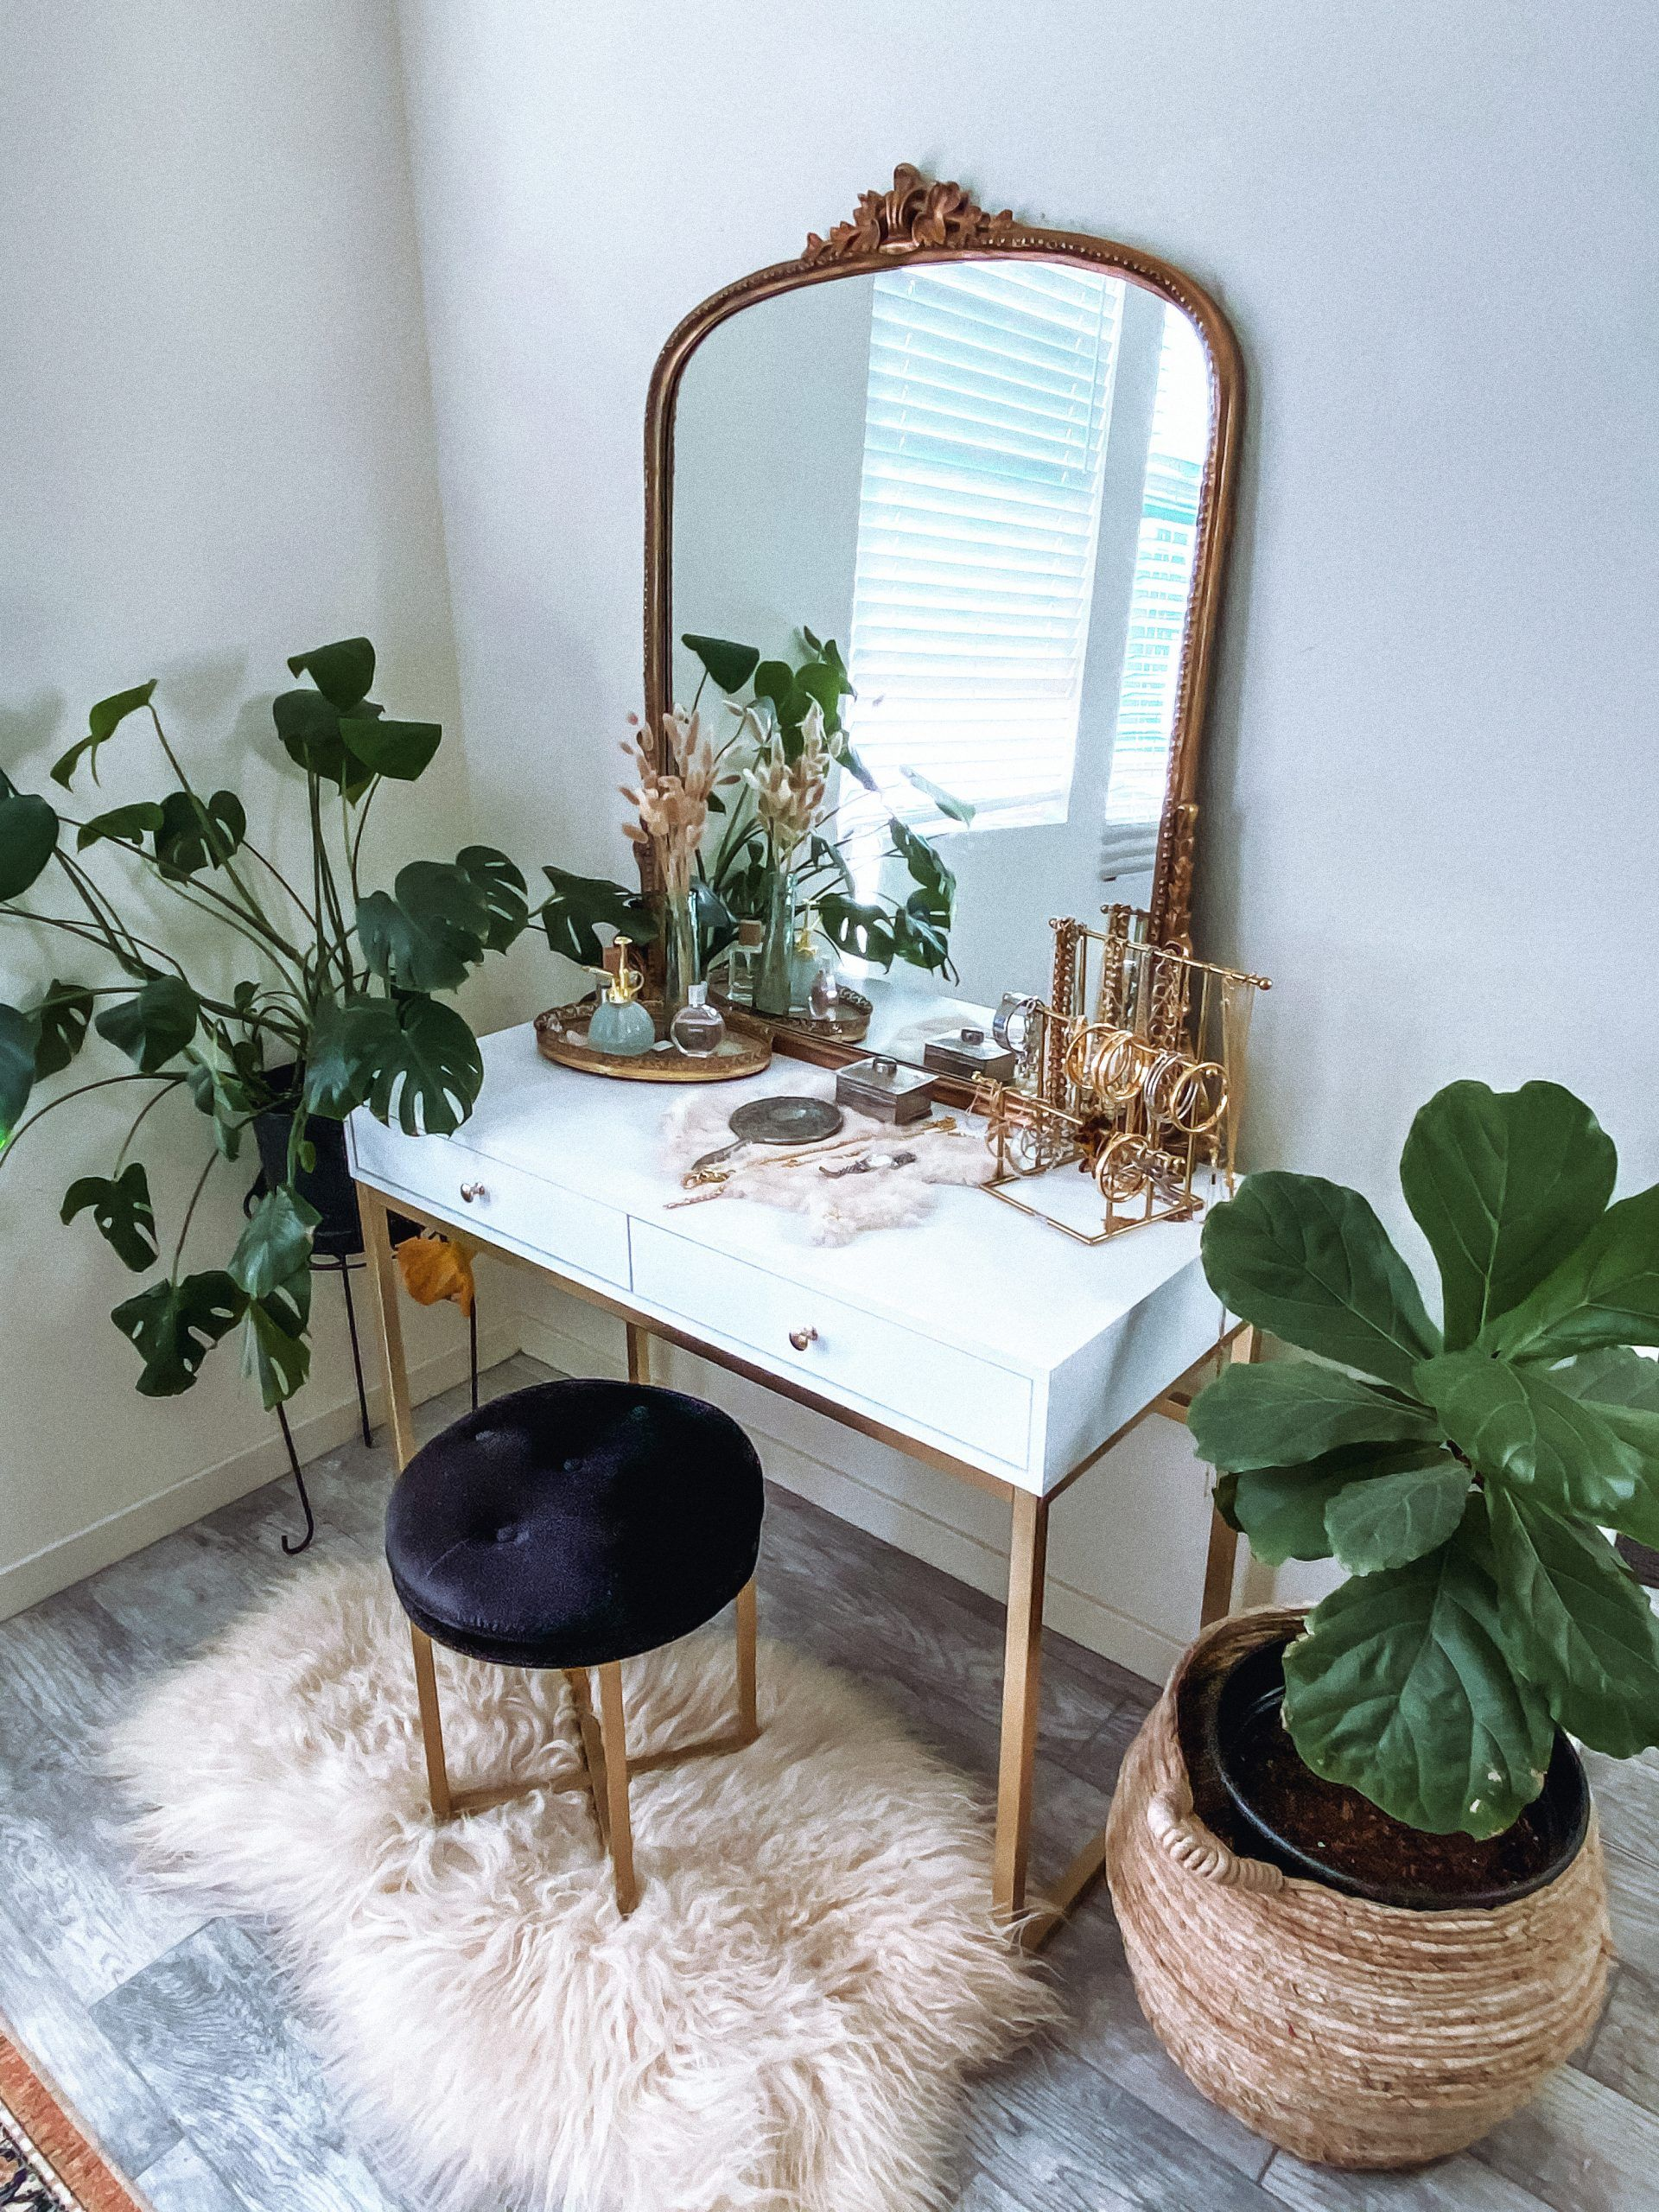 6 tips for a Pinterest-Worthy home